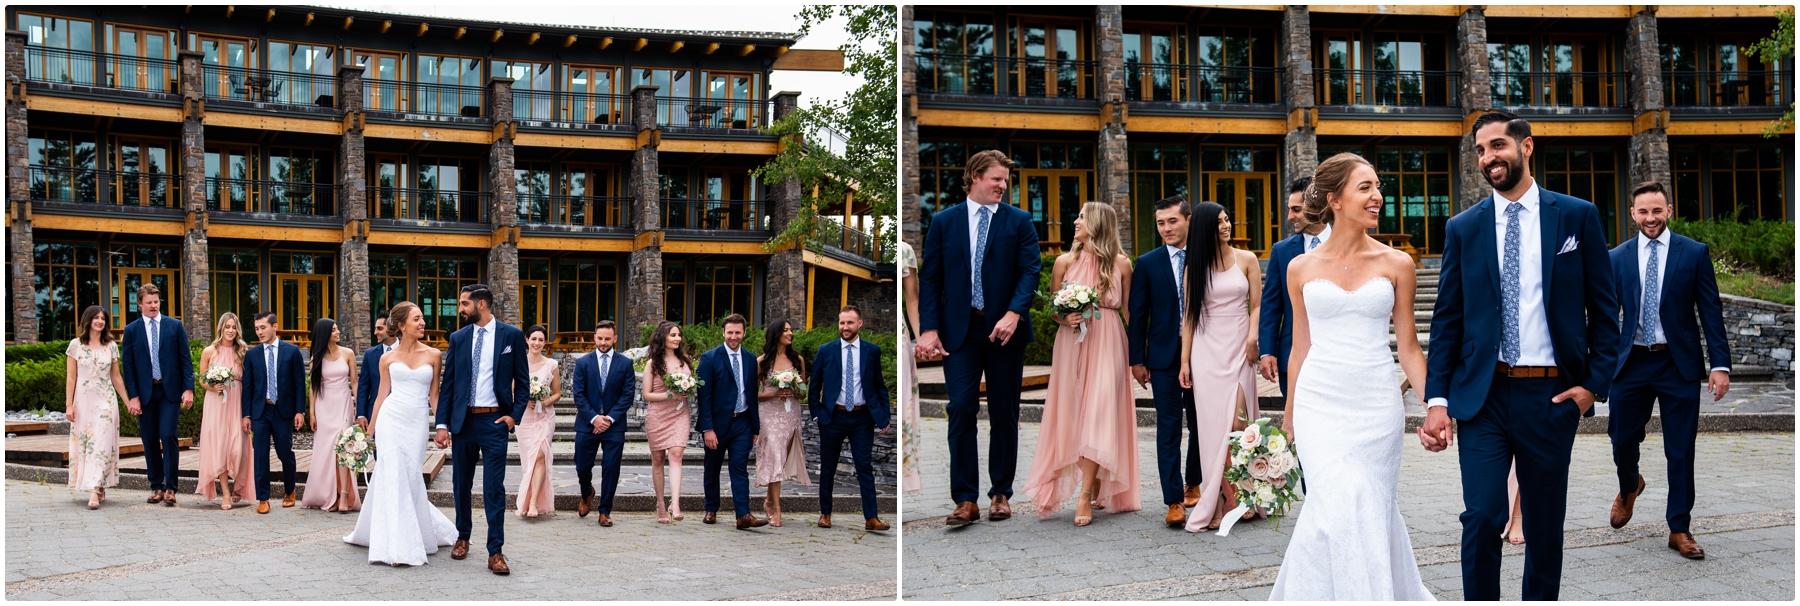 Azuridge Estate Hotel Wedding - Wedding Party Photos